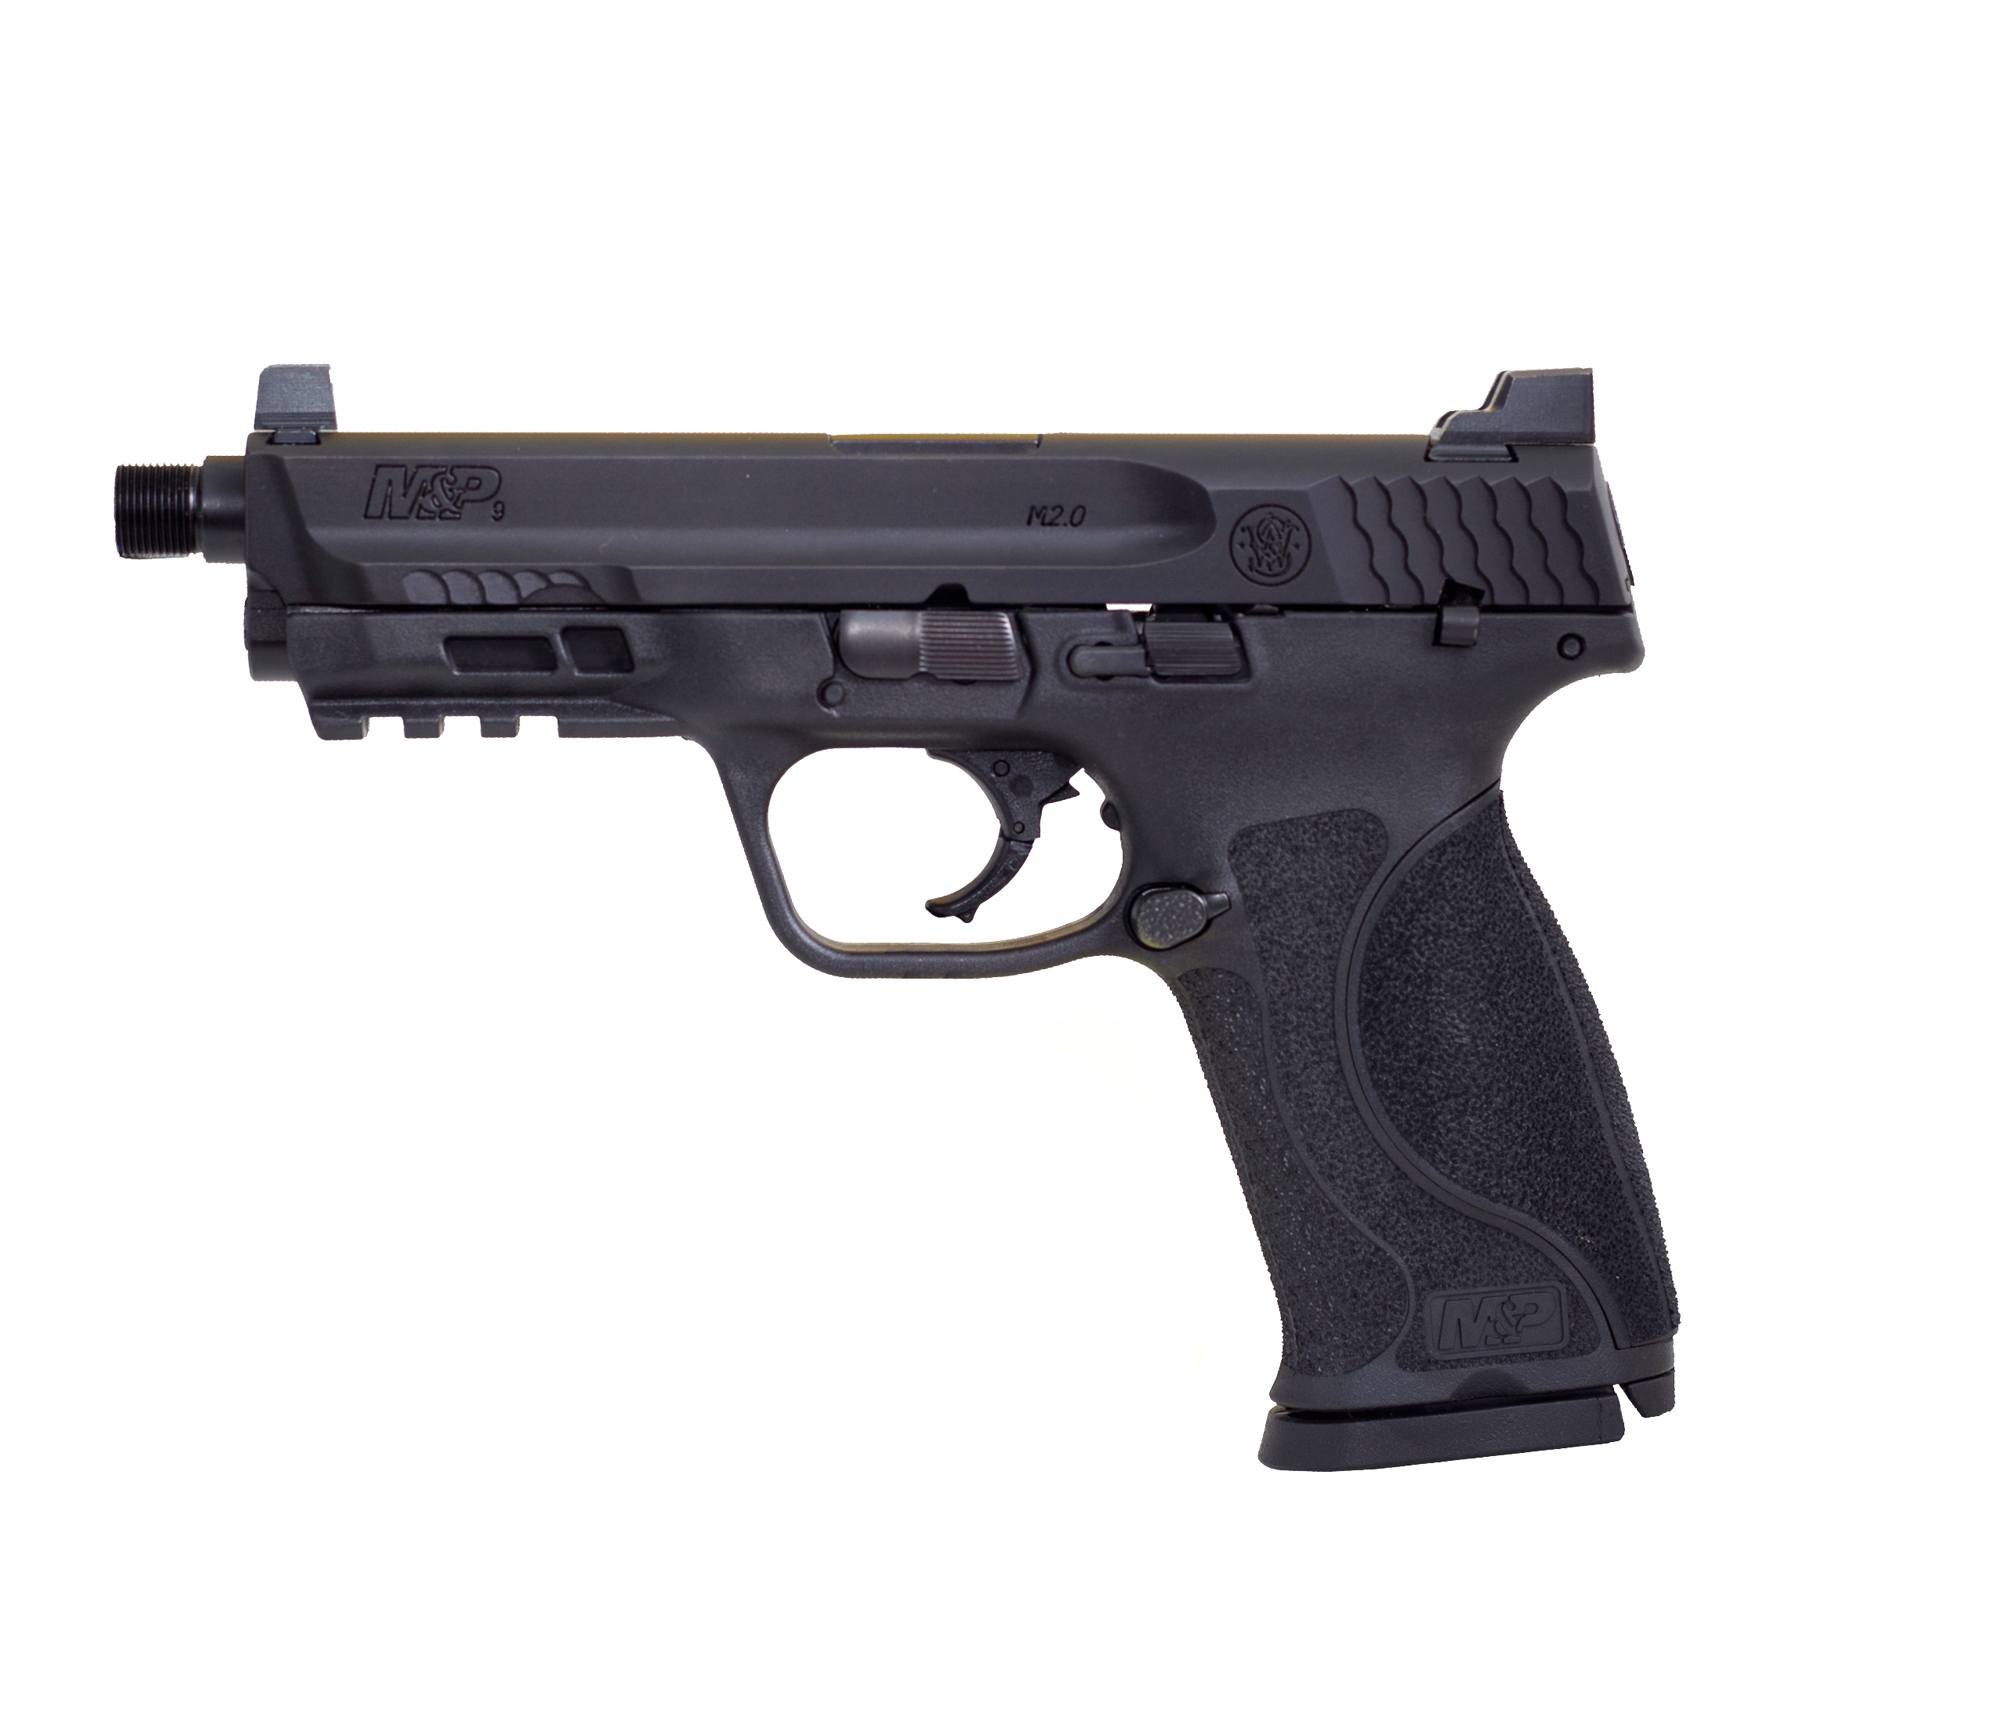 Hush Puppy Project HPP MP9 9MM